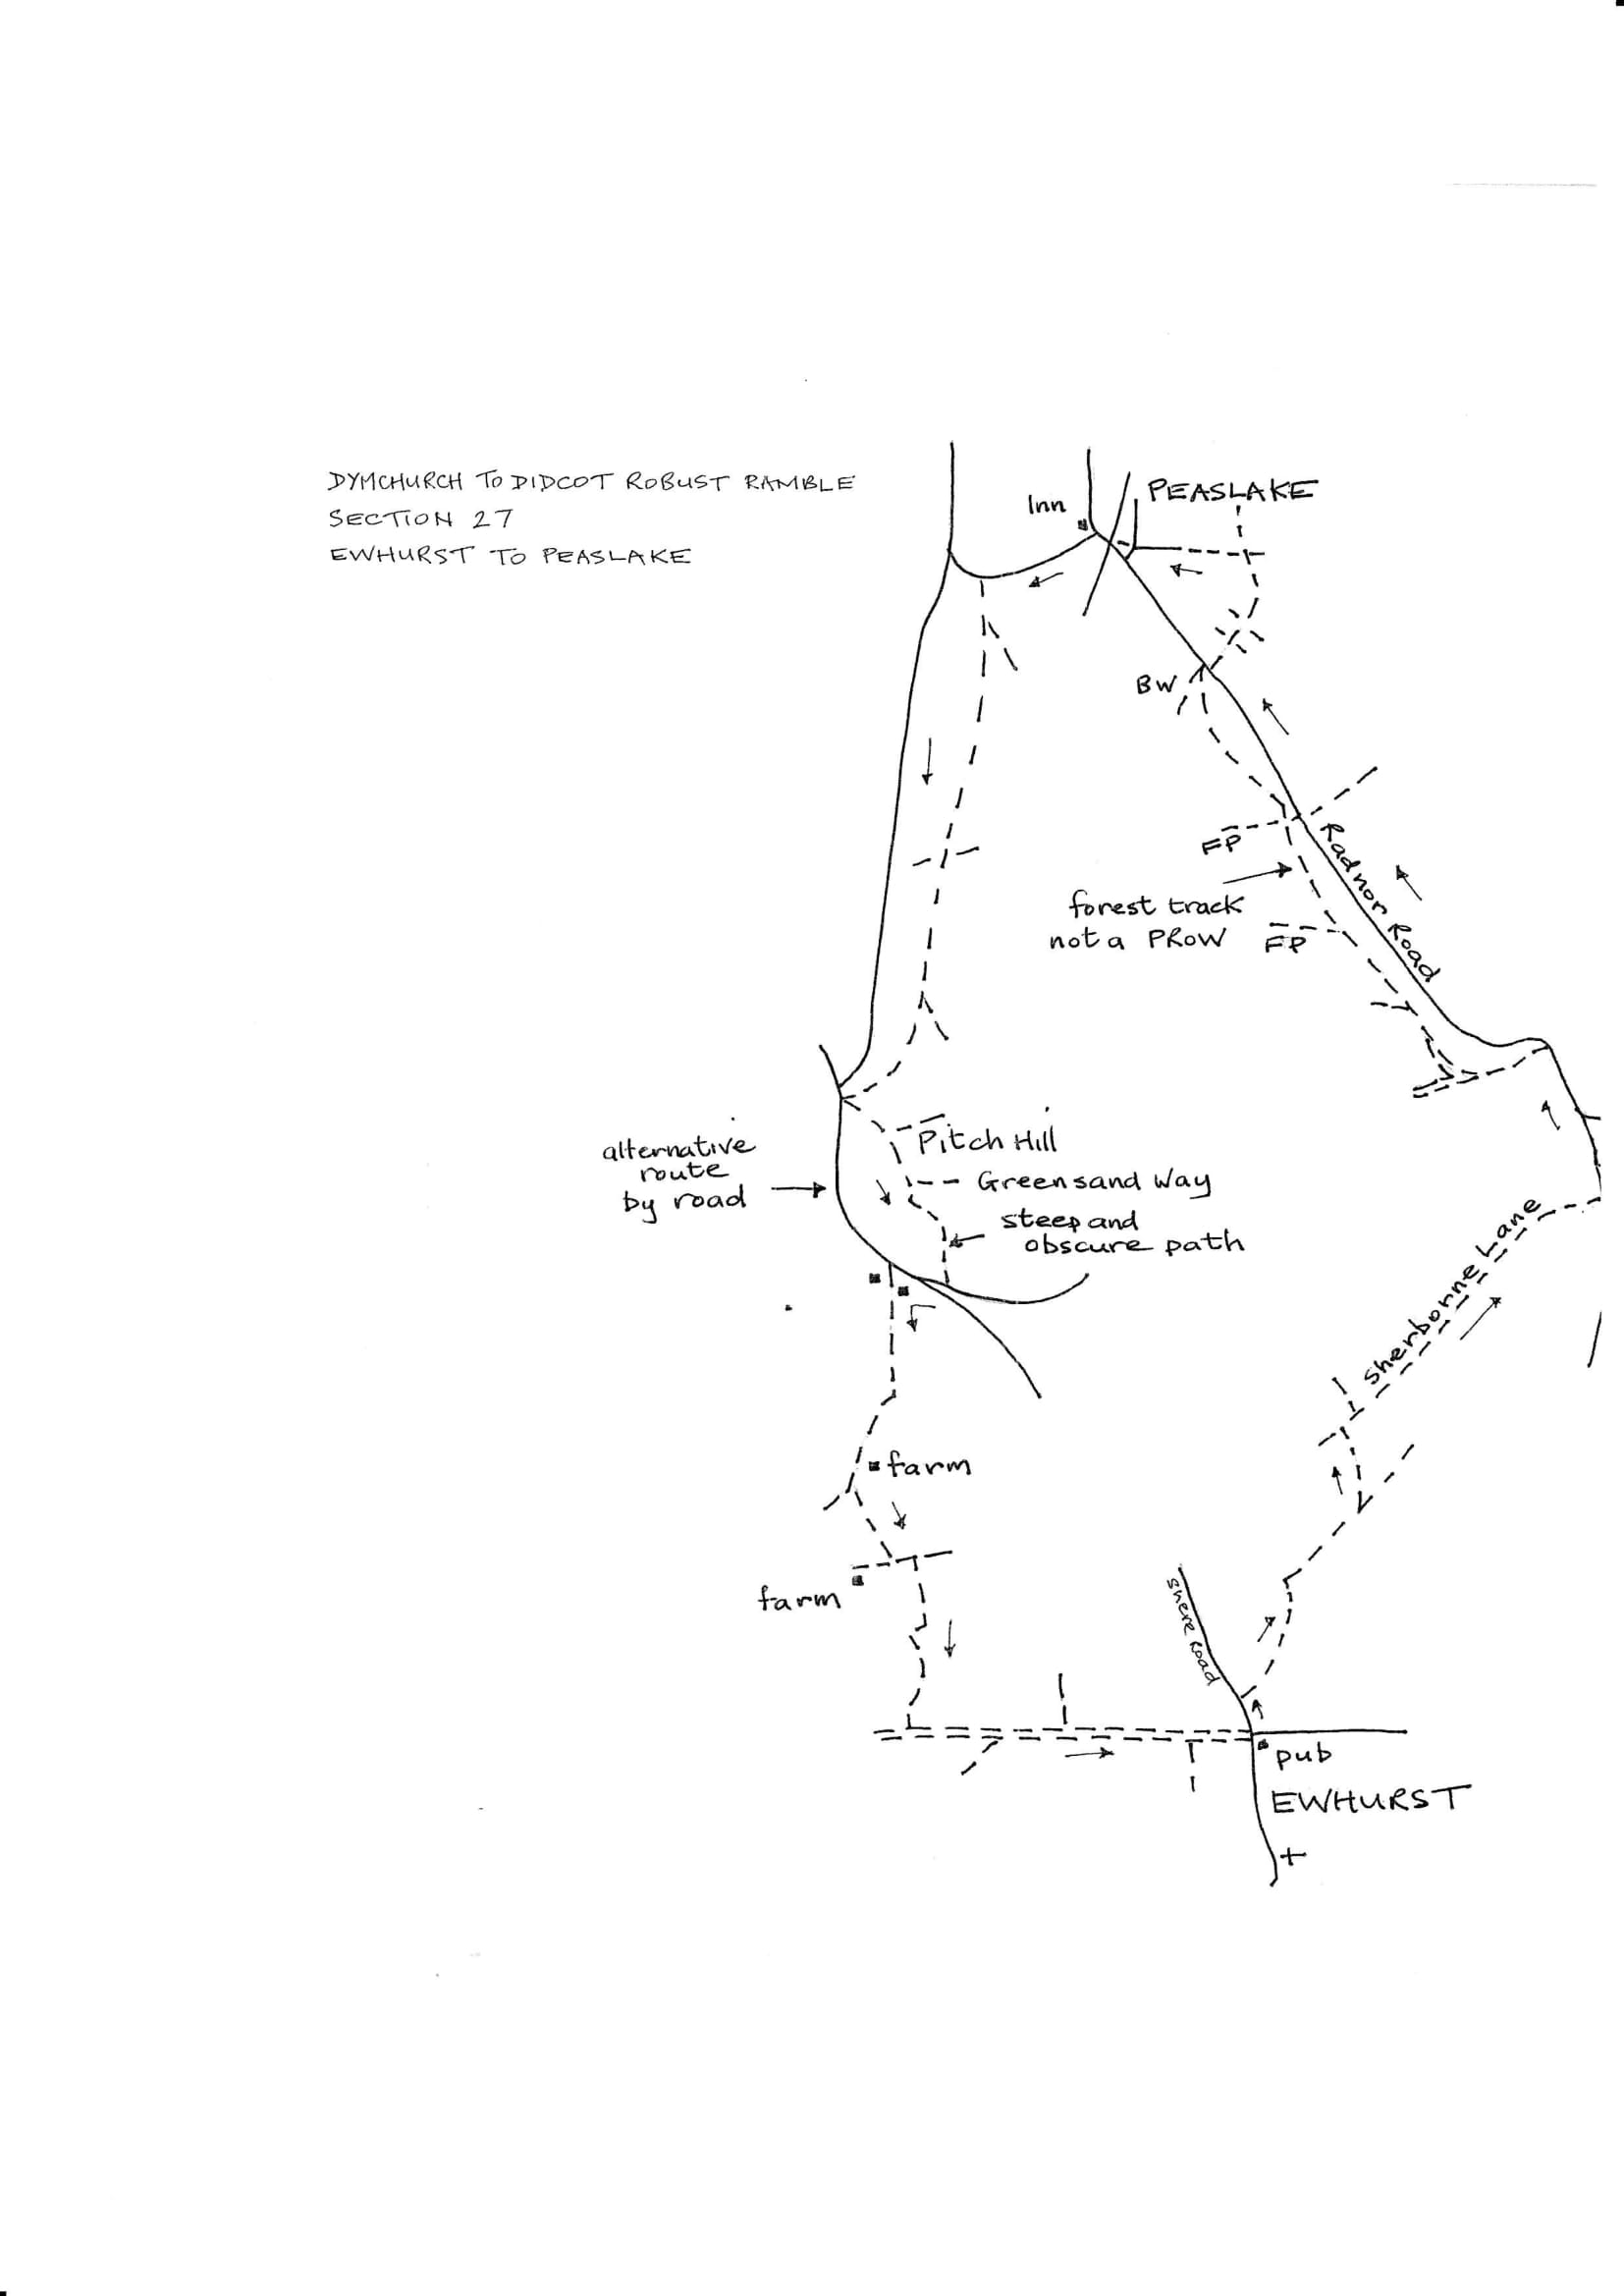 Map of Dymchurch To Didcot Robust Ramble: Section 27 Out